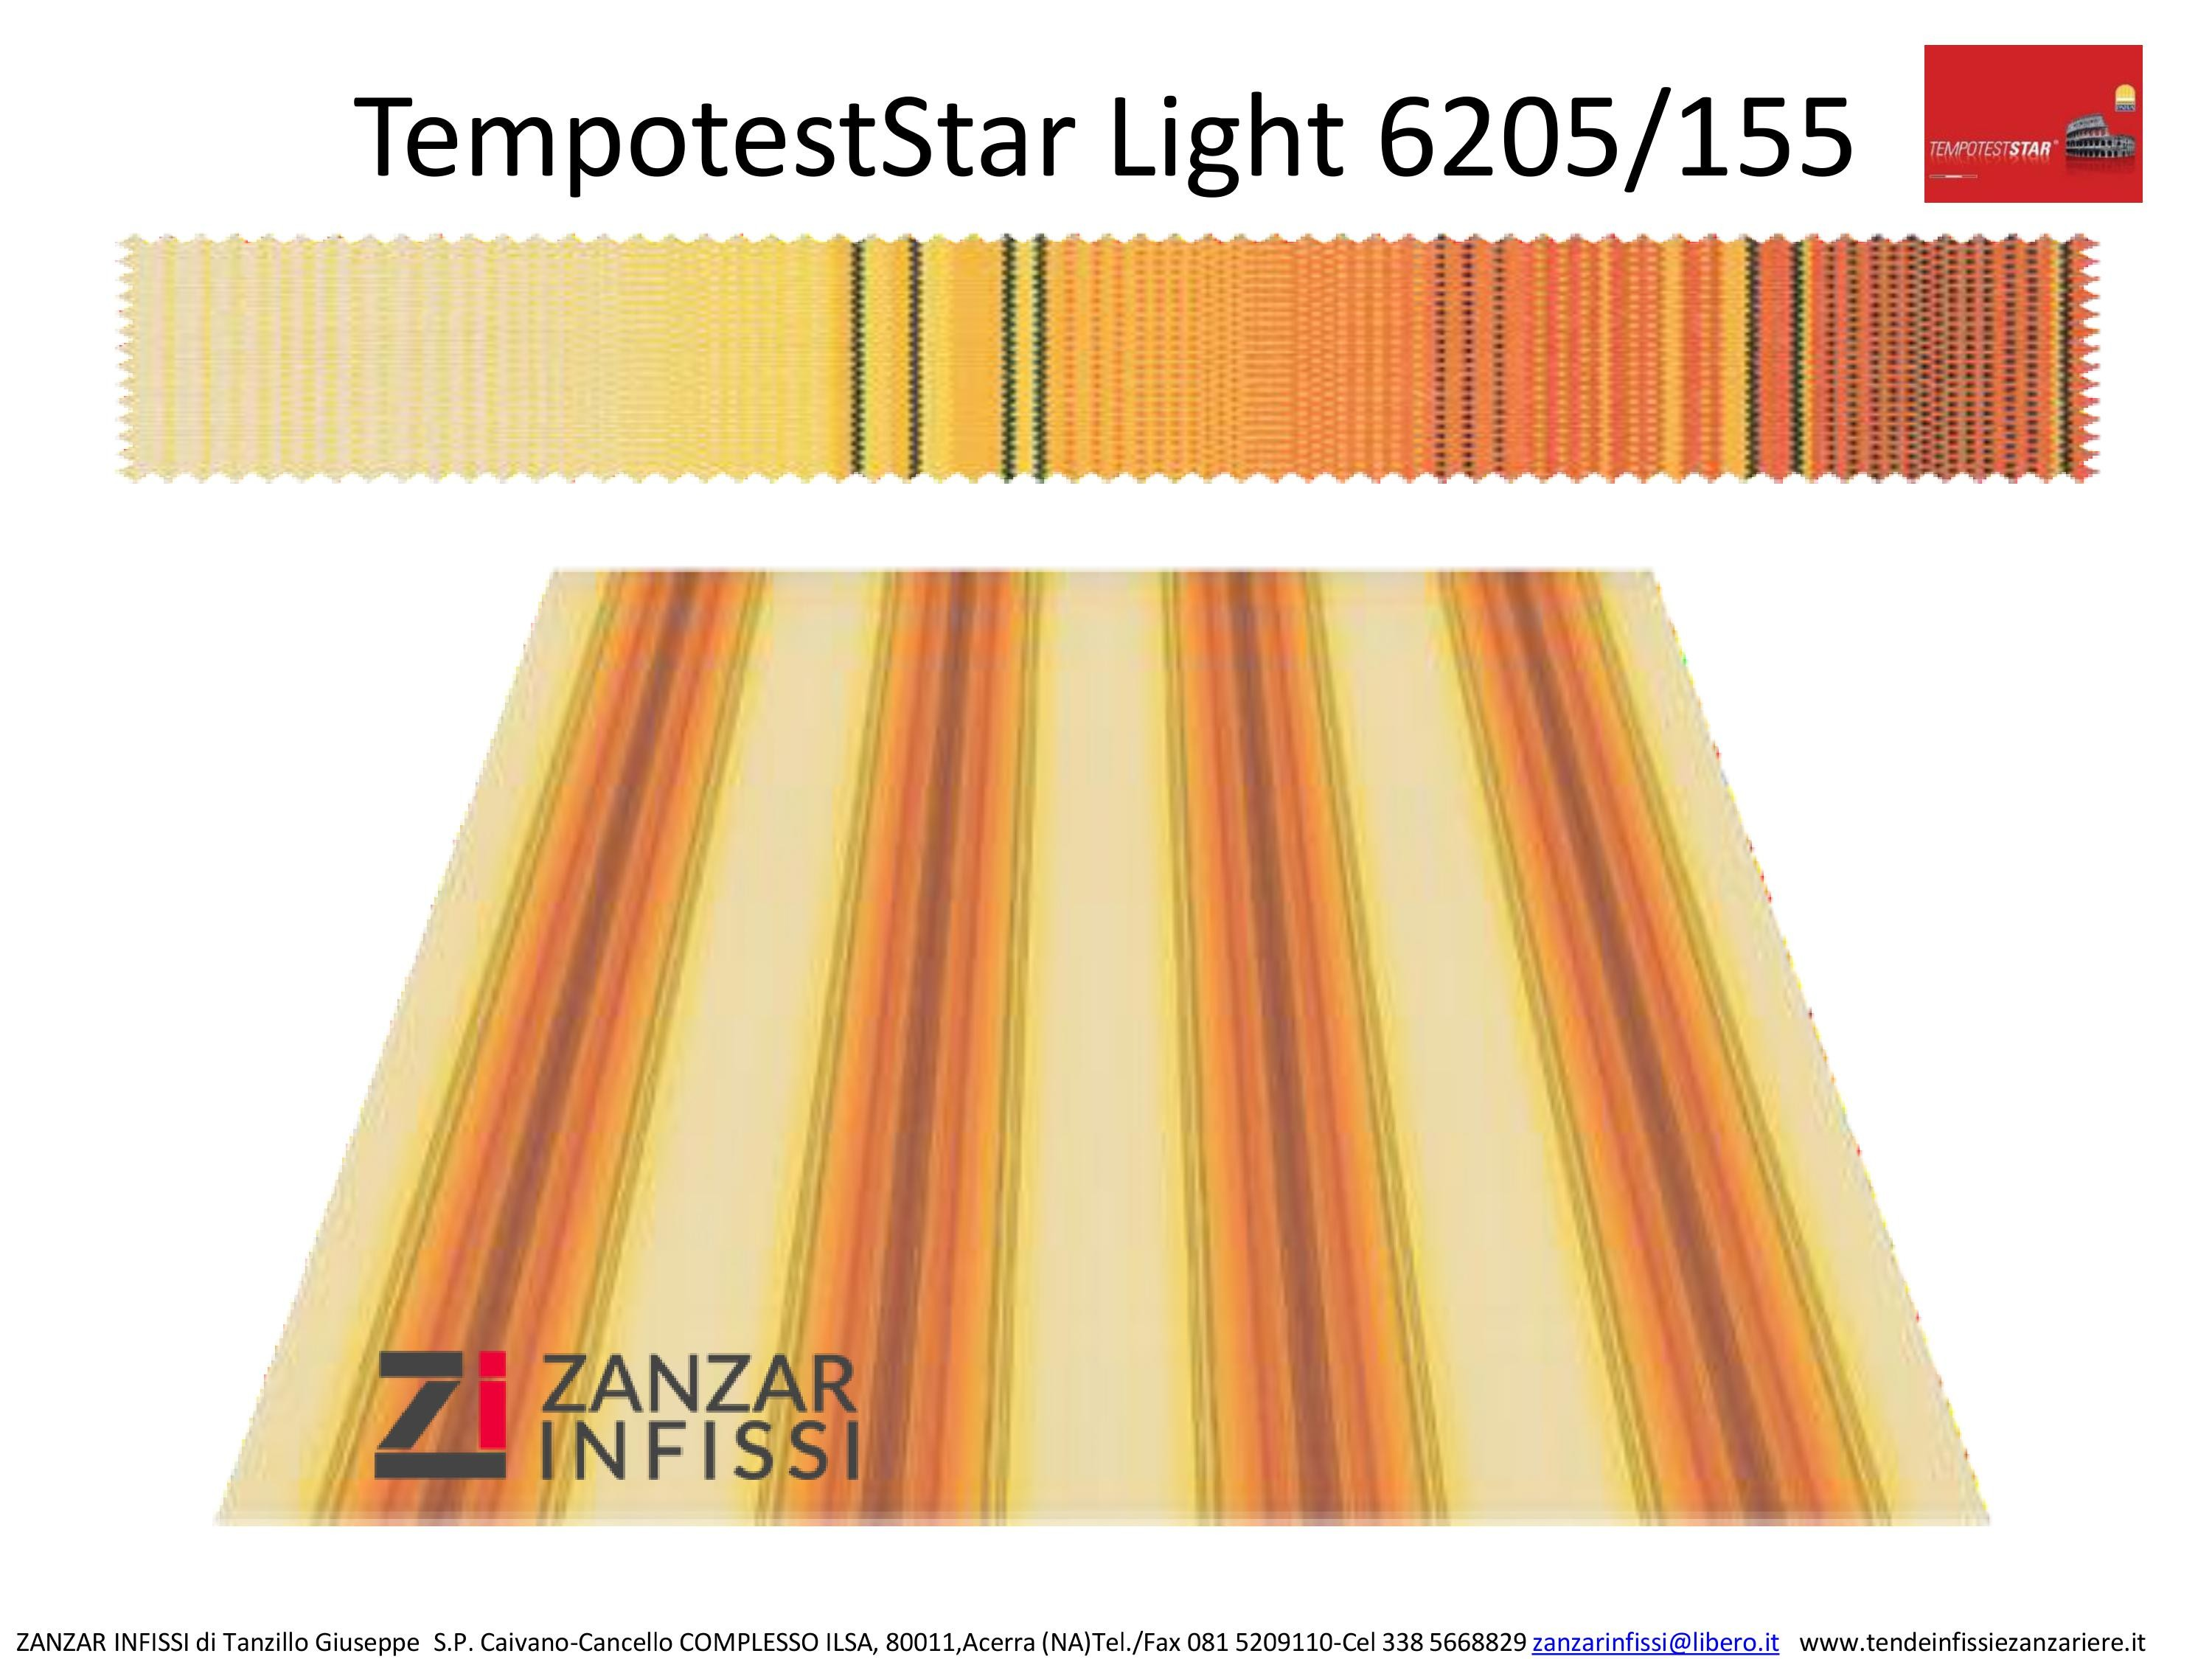 Tempotest star light 6205/155